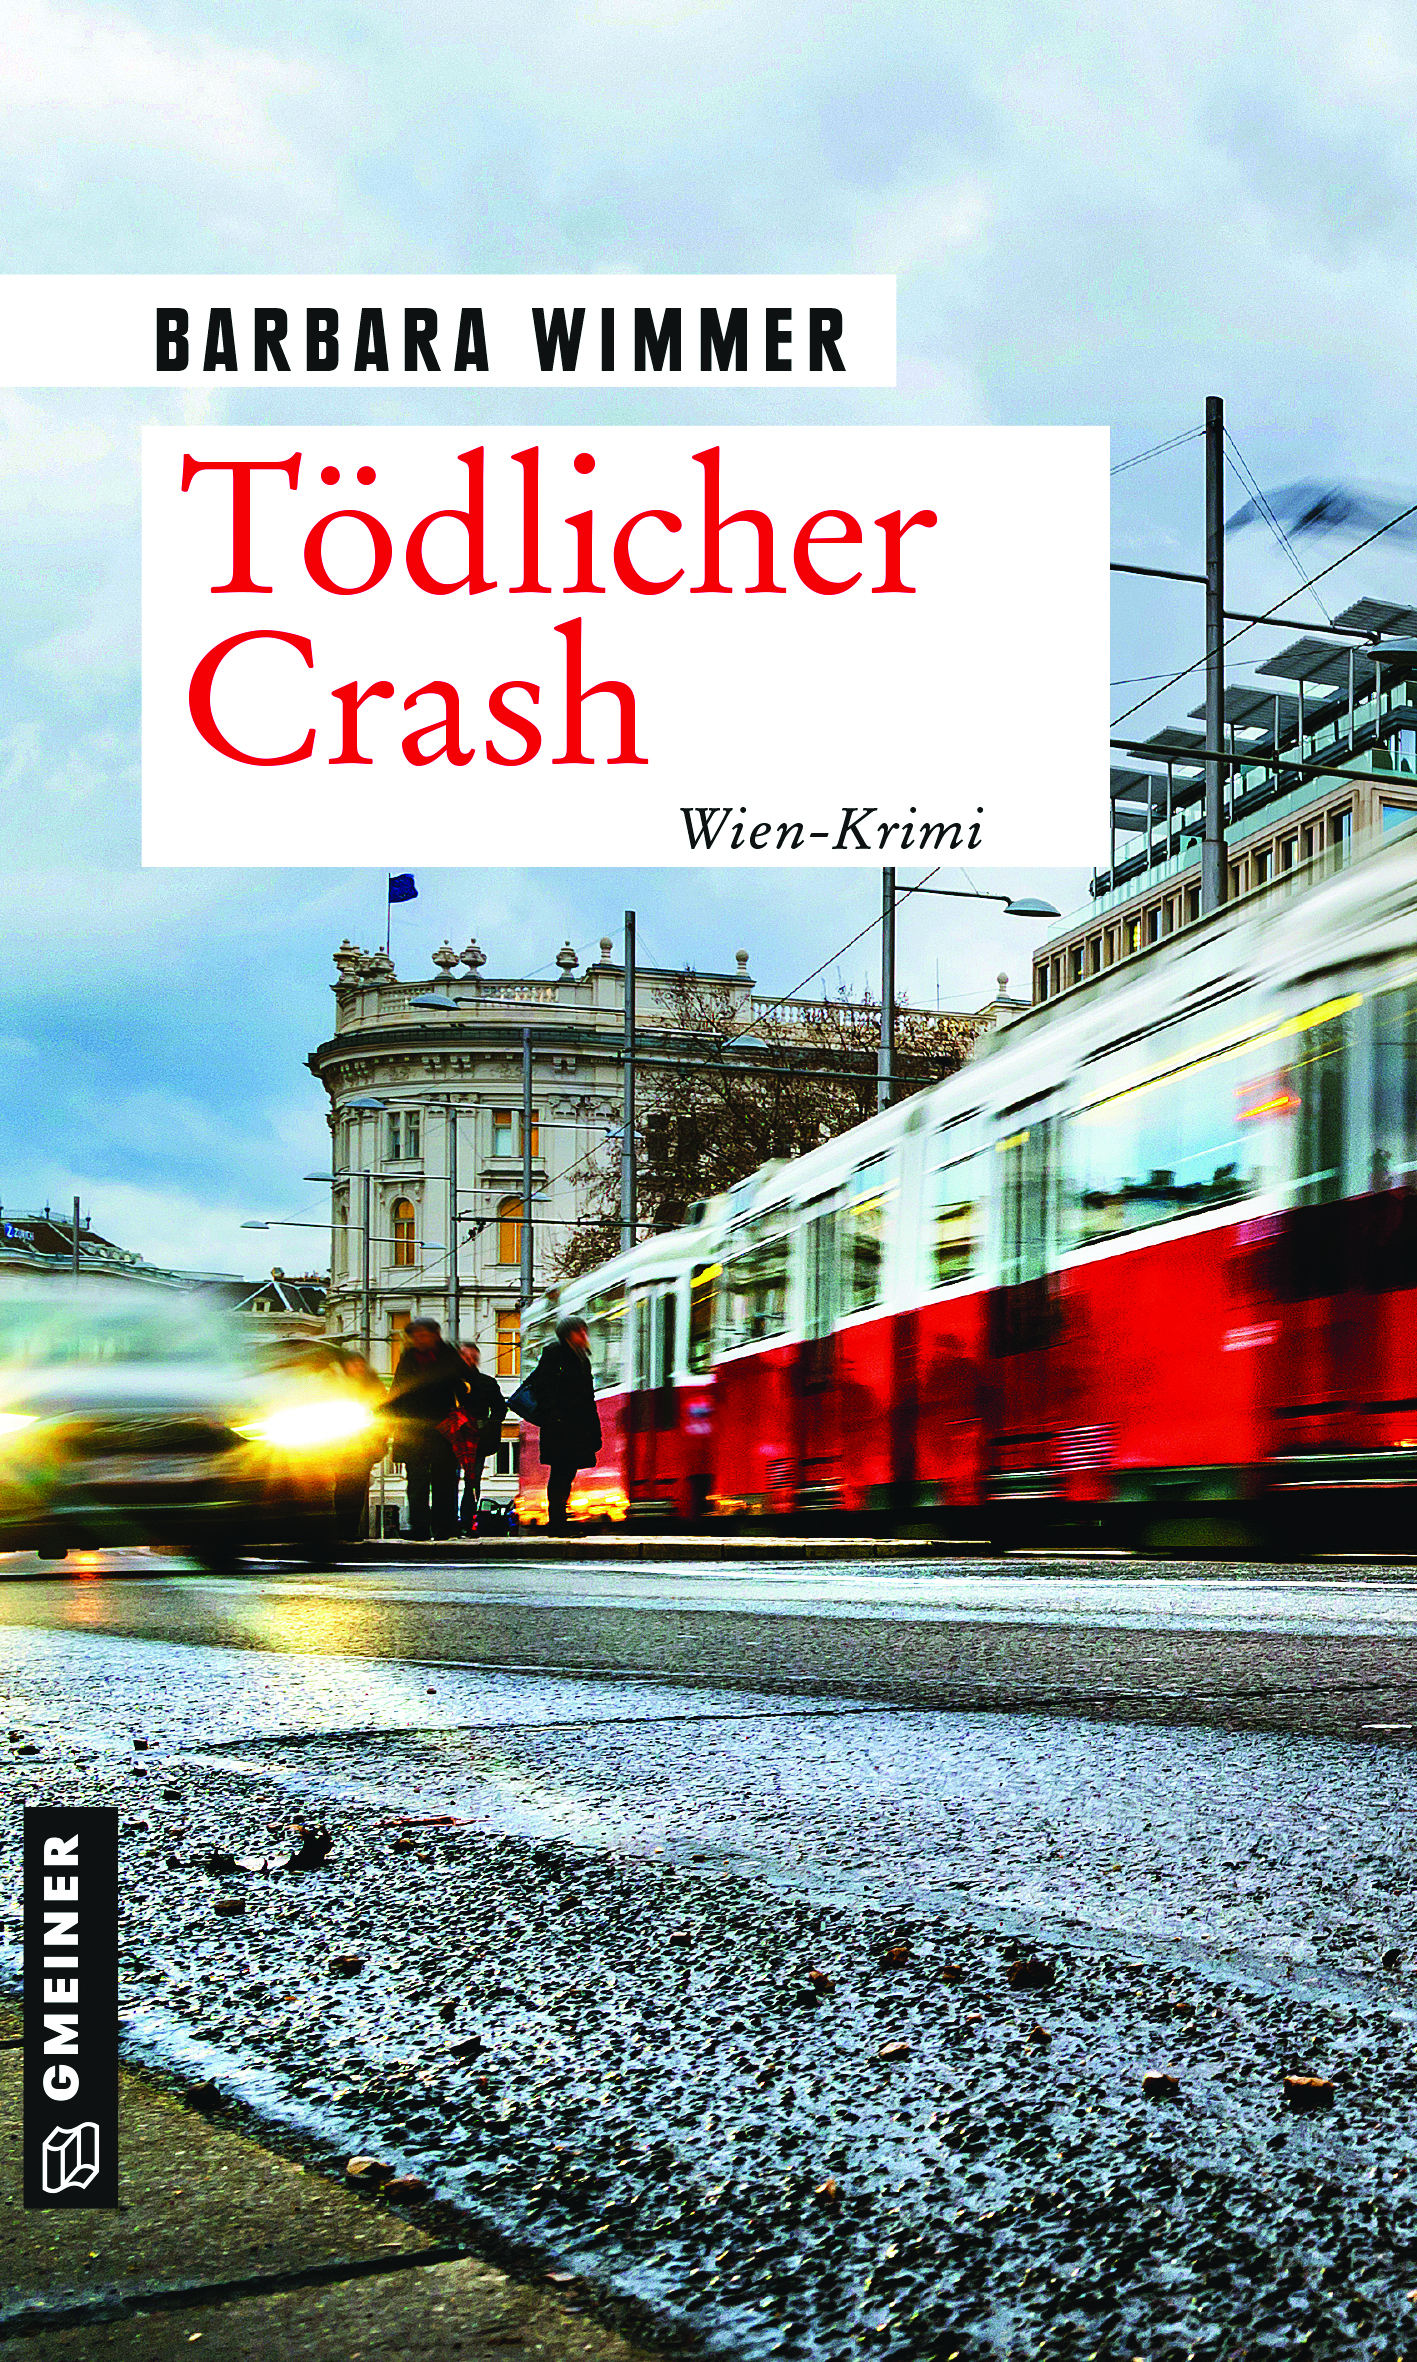 Tödlicher_Crash_LY_2.indd